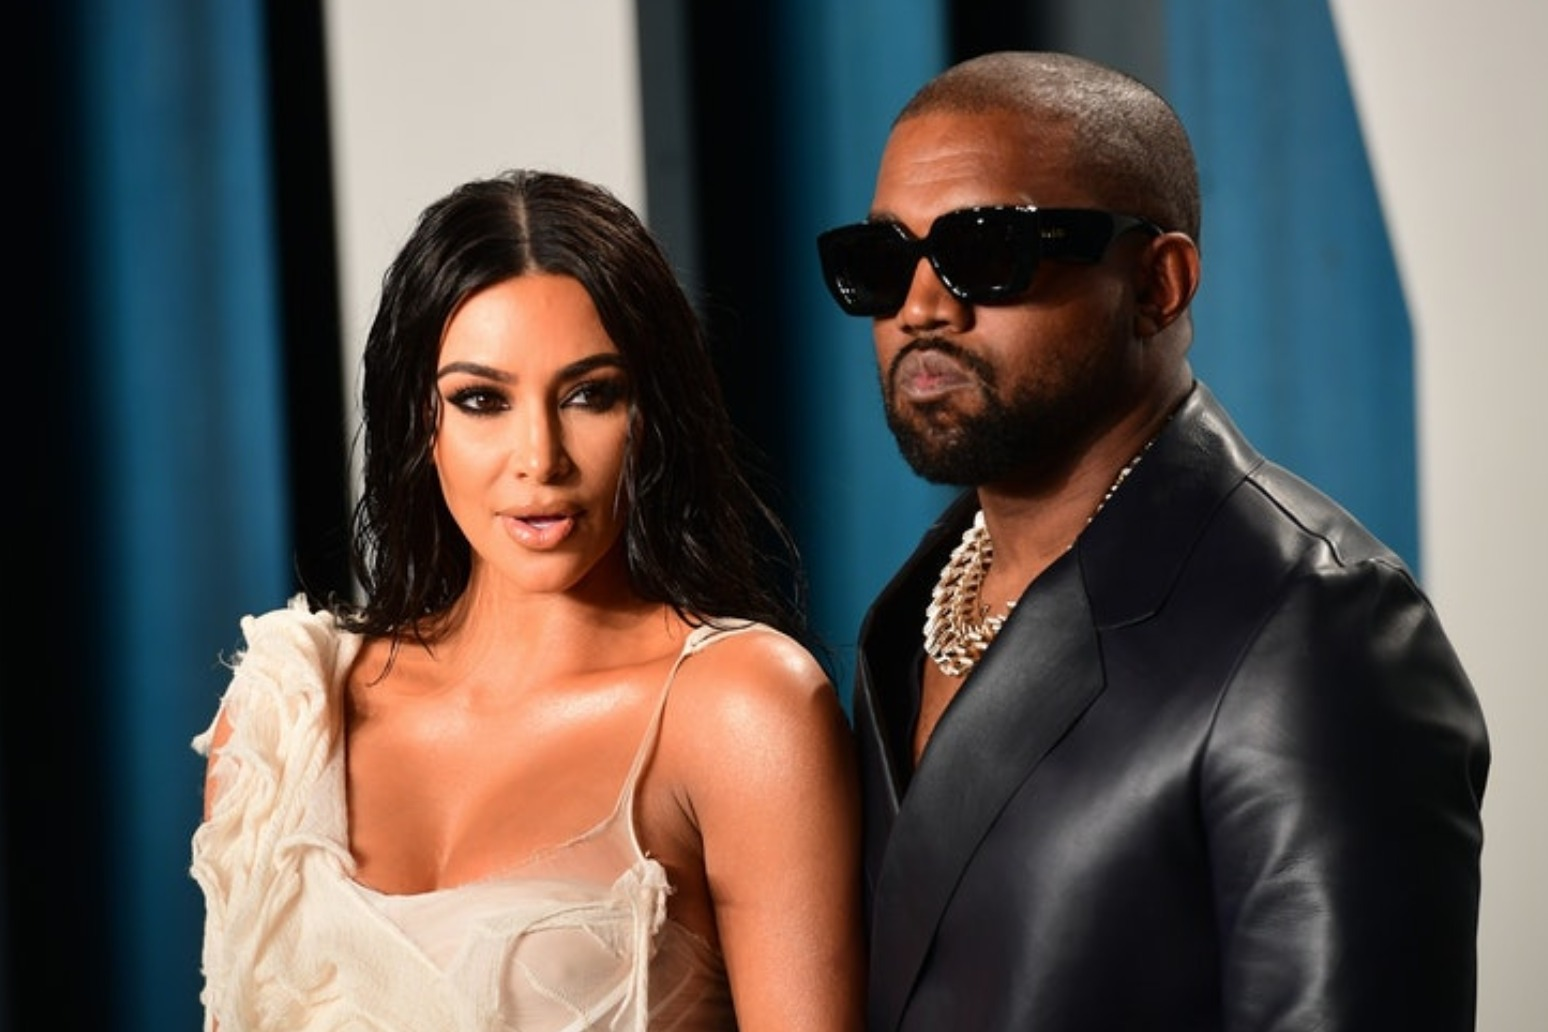 Kim Kardashian West announces end of family's reality TV show after 20 seasons